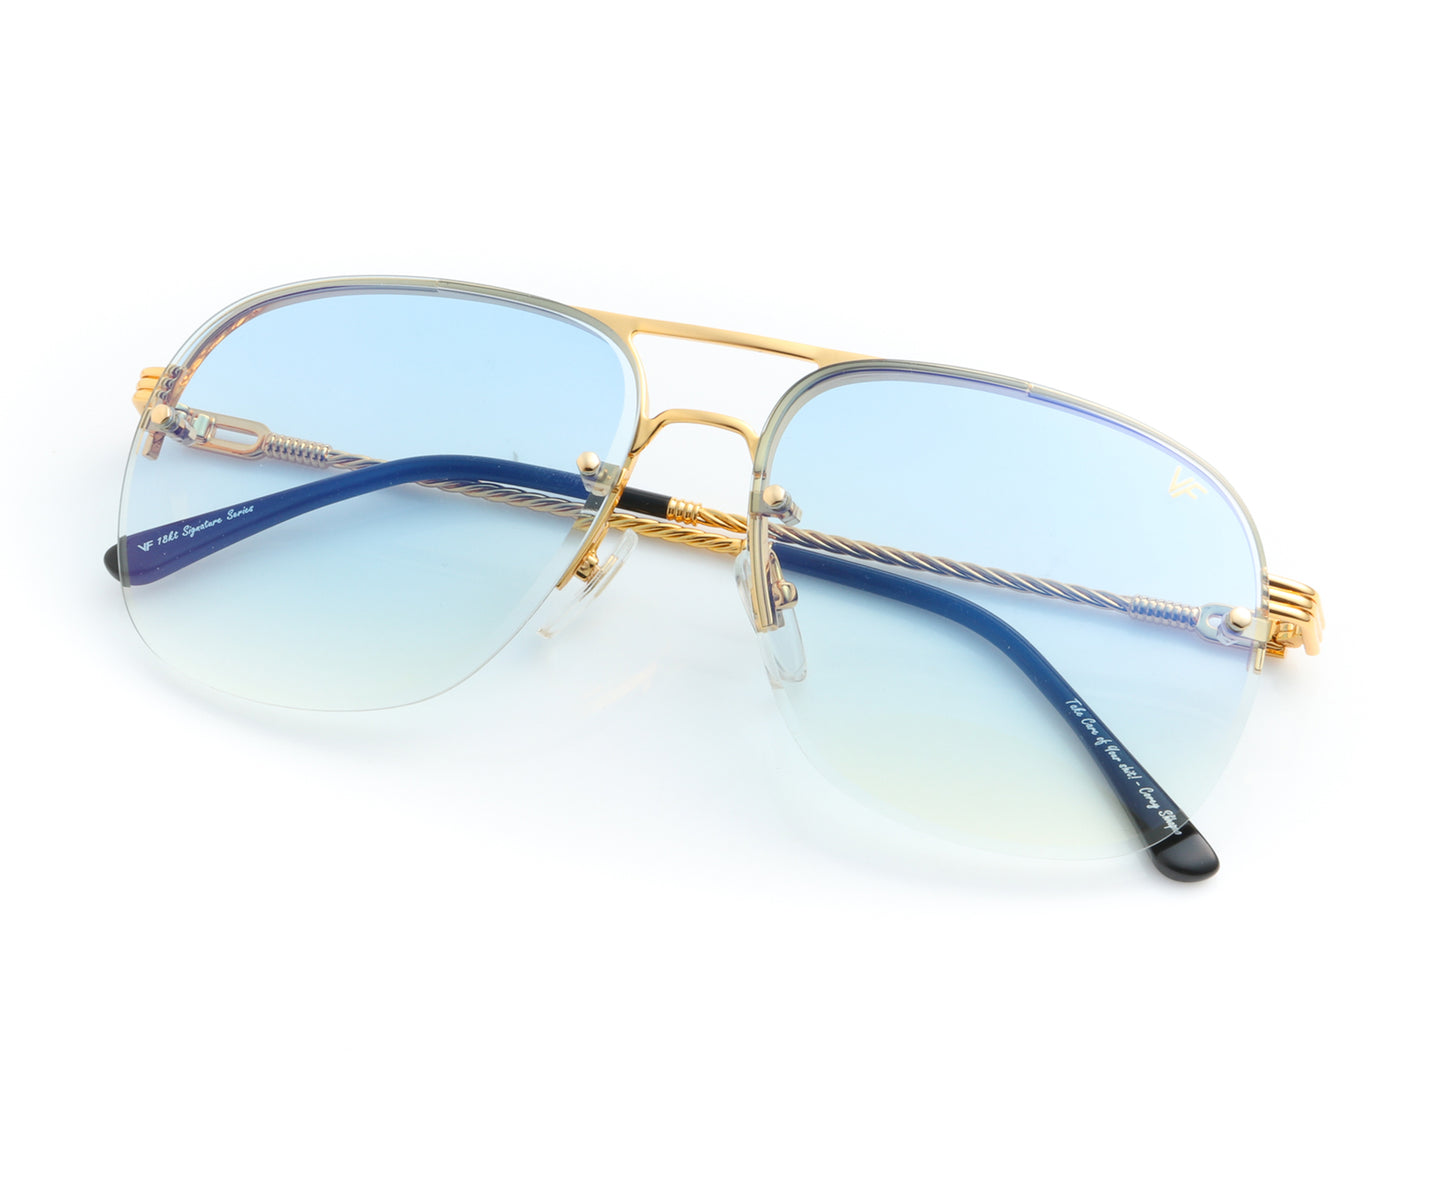 Snatch Bevel 18KT Drill Mount Gold (Pastel Blue), VF Drill Mount , glasses frames, eyeglasses online, eyeglass frames, mens glasses, womens glasses, buy glasses online, designer eyeglasses, vintage sunglasses, retro sunglasses, vintage glasses, sunglass, eyeglass, glasses, lens, vintage frames company, vf